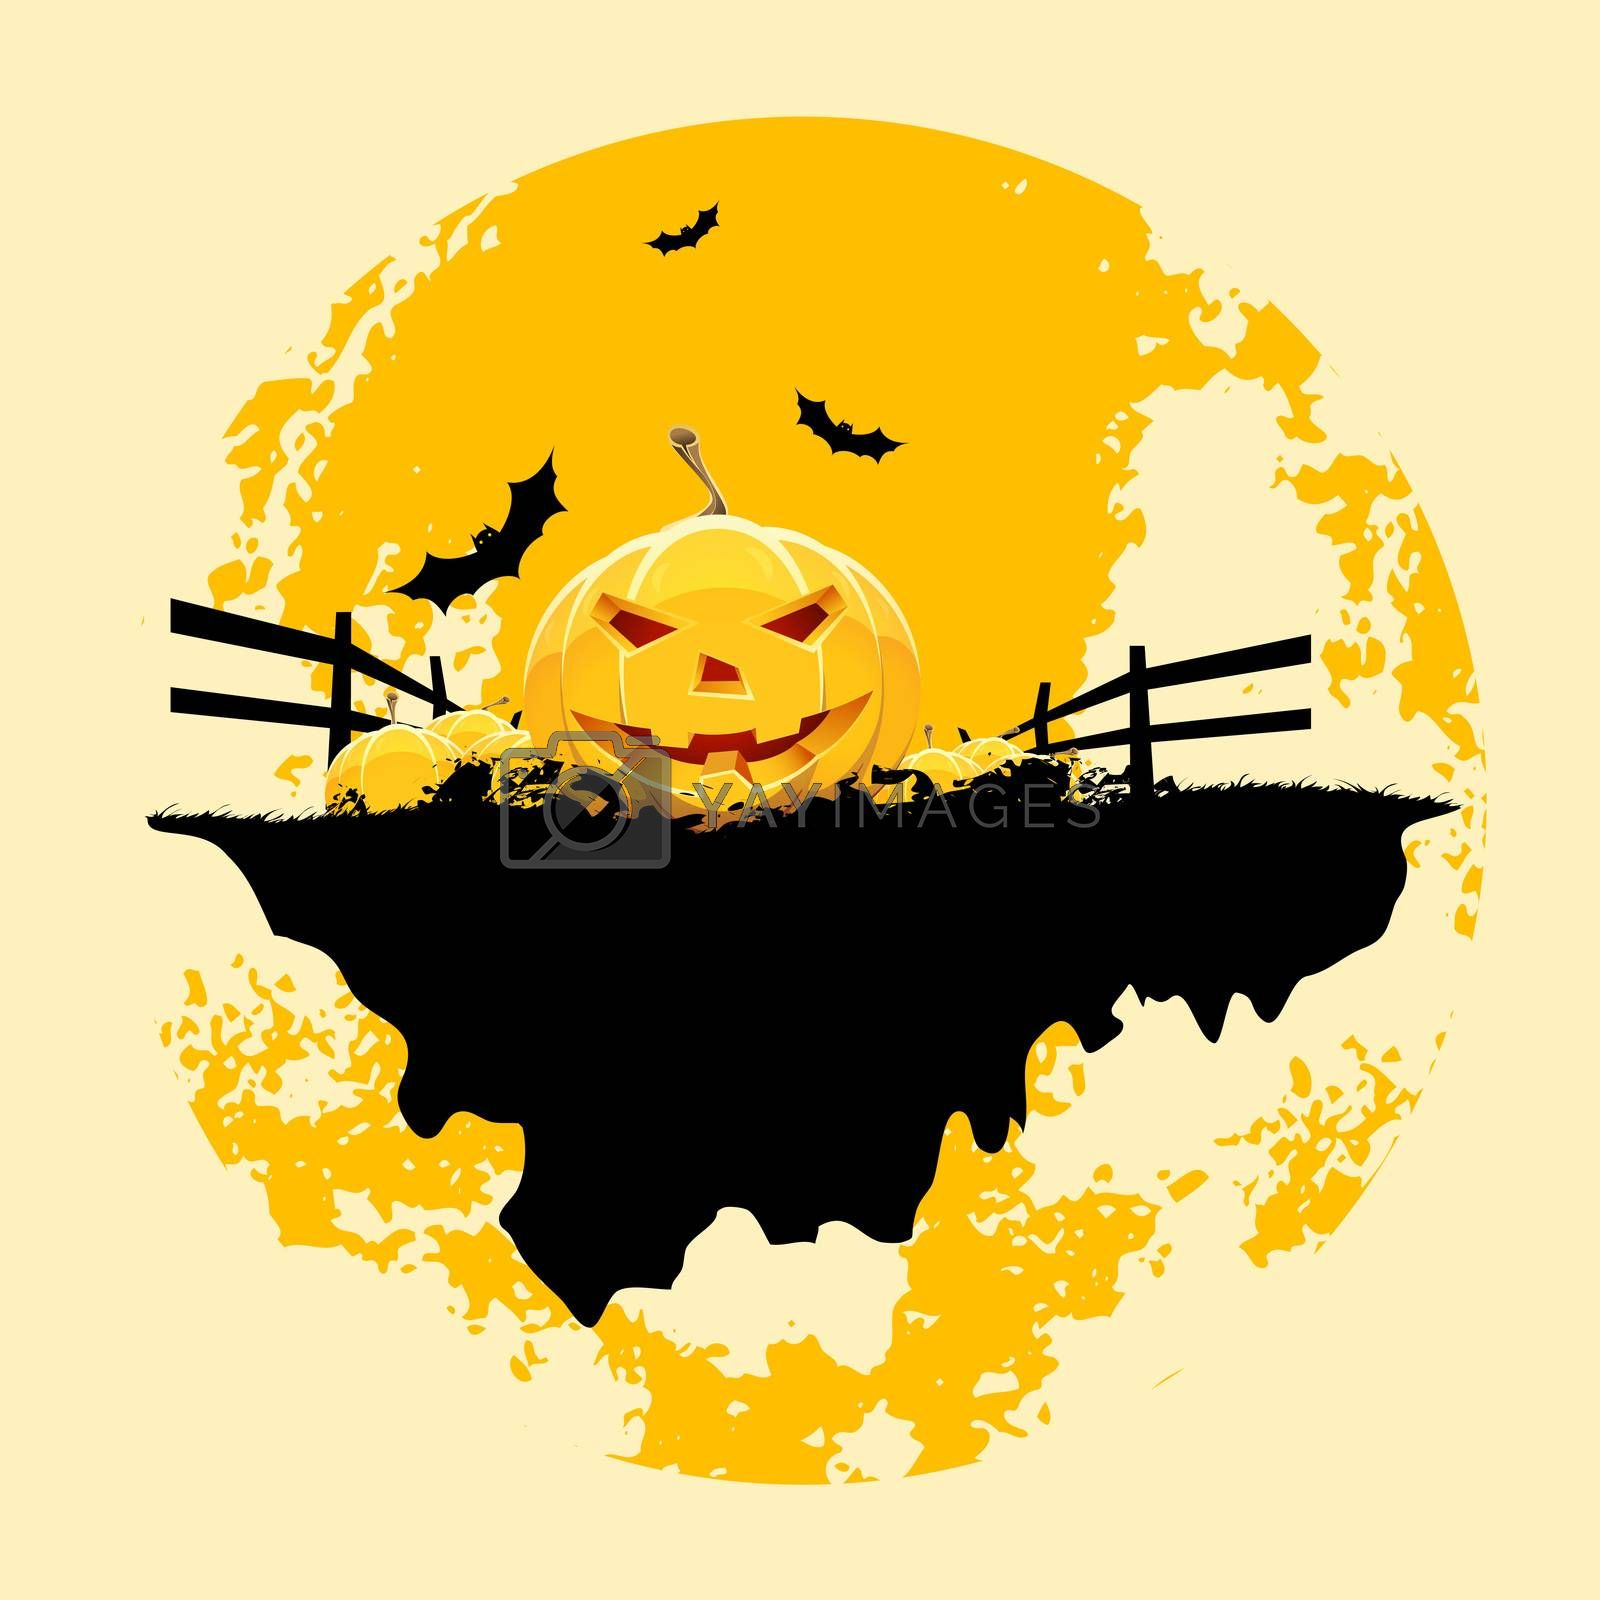 Grungy Halloween background with pumpkins and bats by WaD